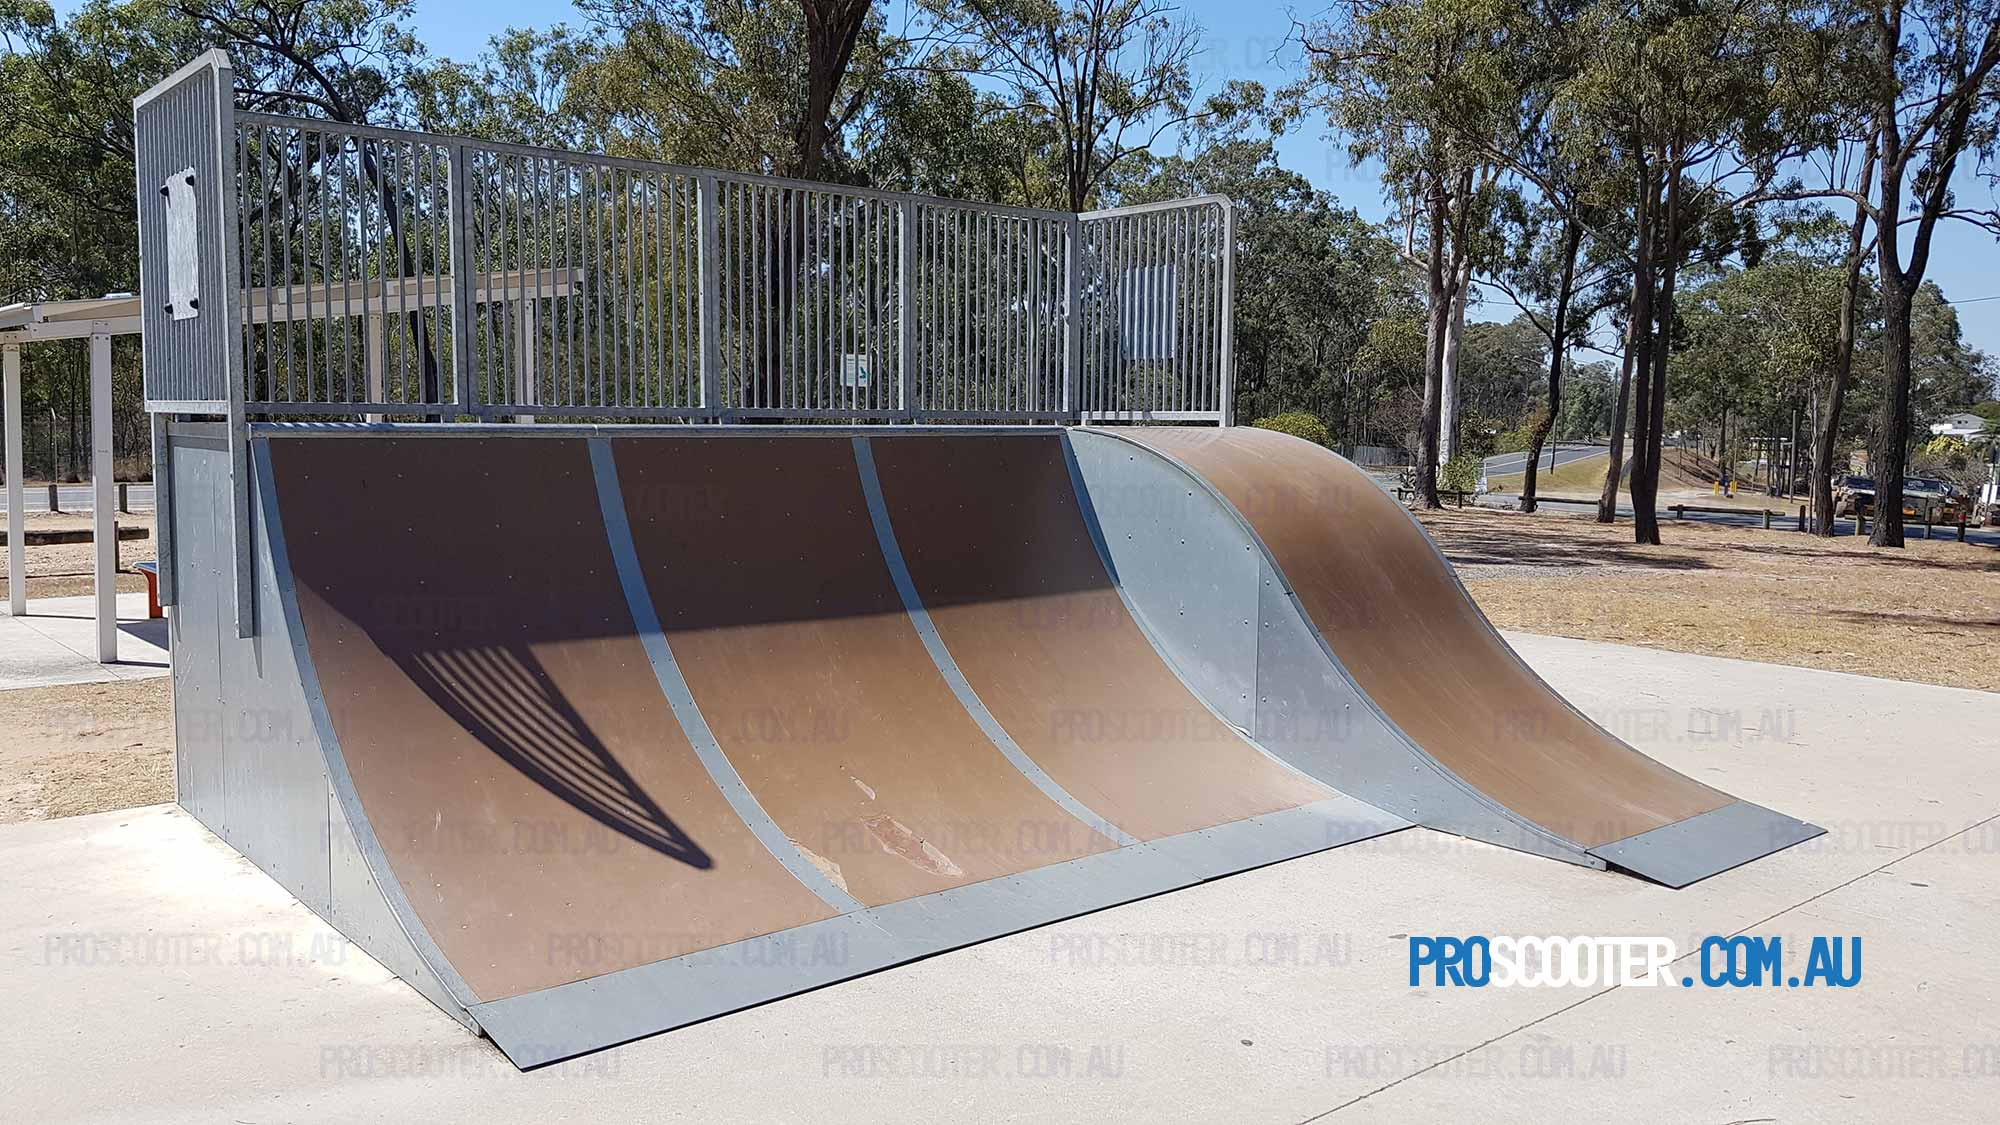 Quarter pipe and roll-in at Greenbank Skatepark